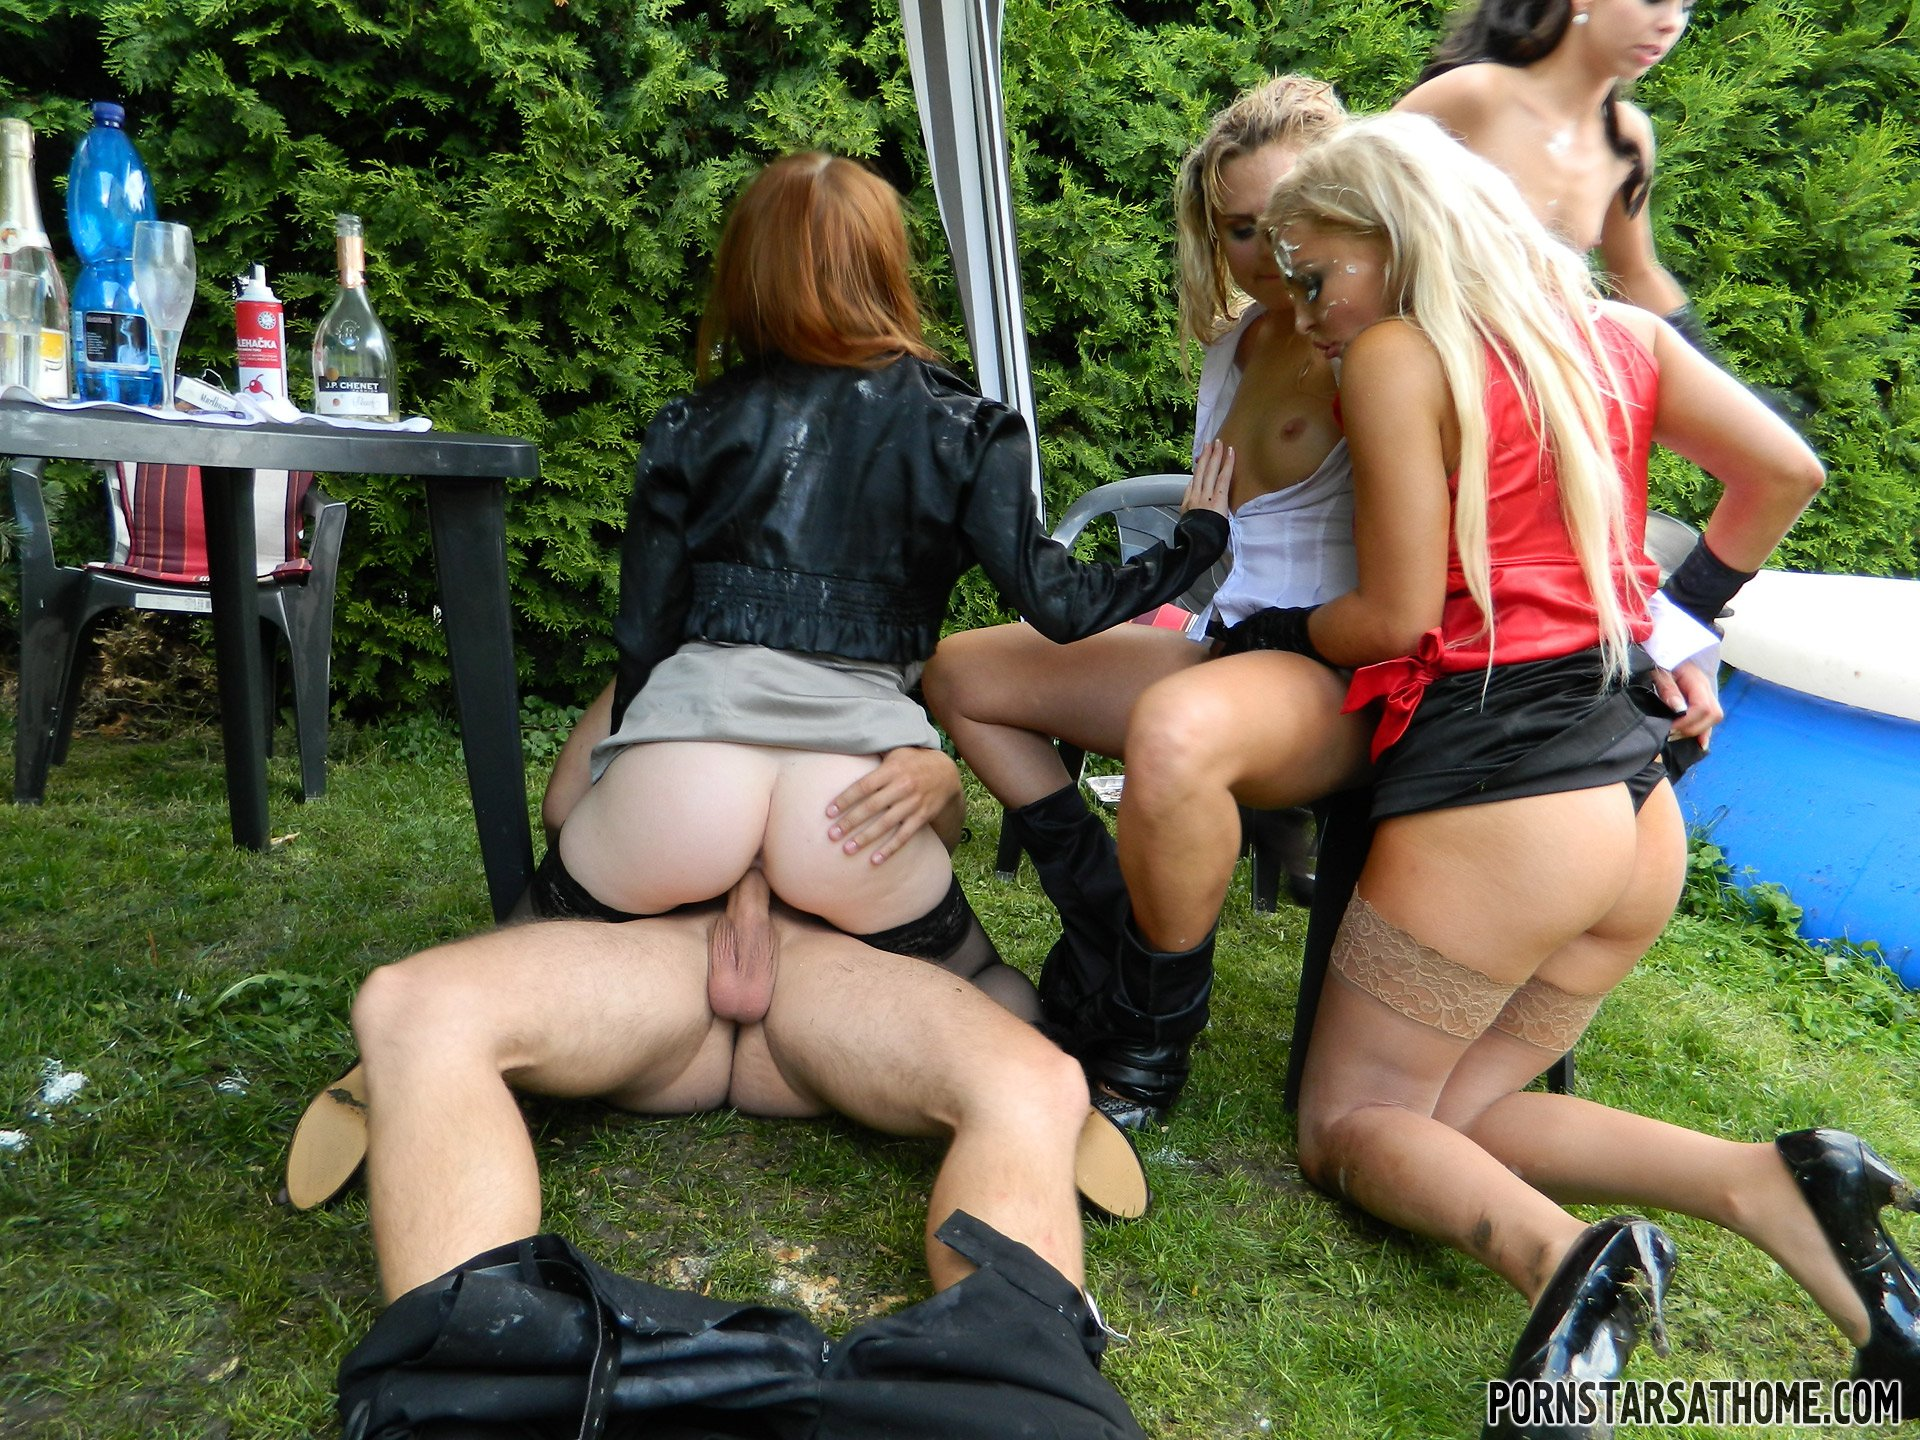 Watch Best Of Public Sex Compilation Online For Free